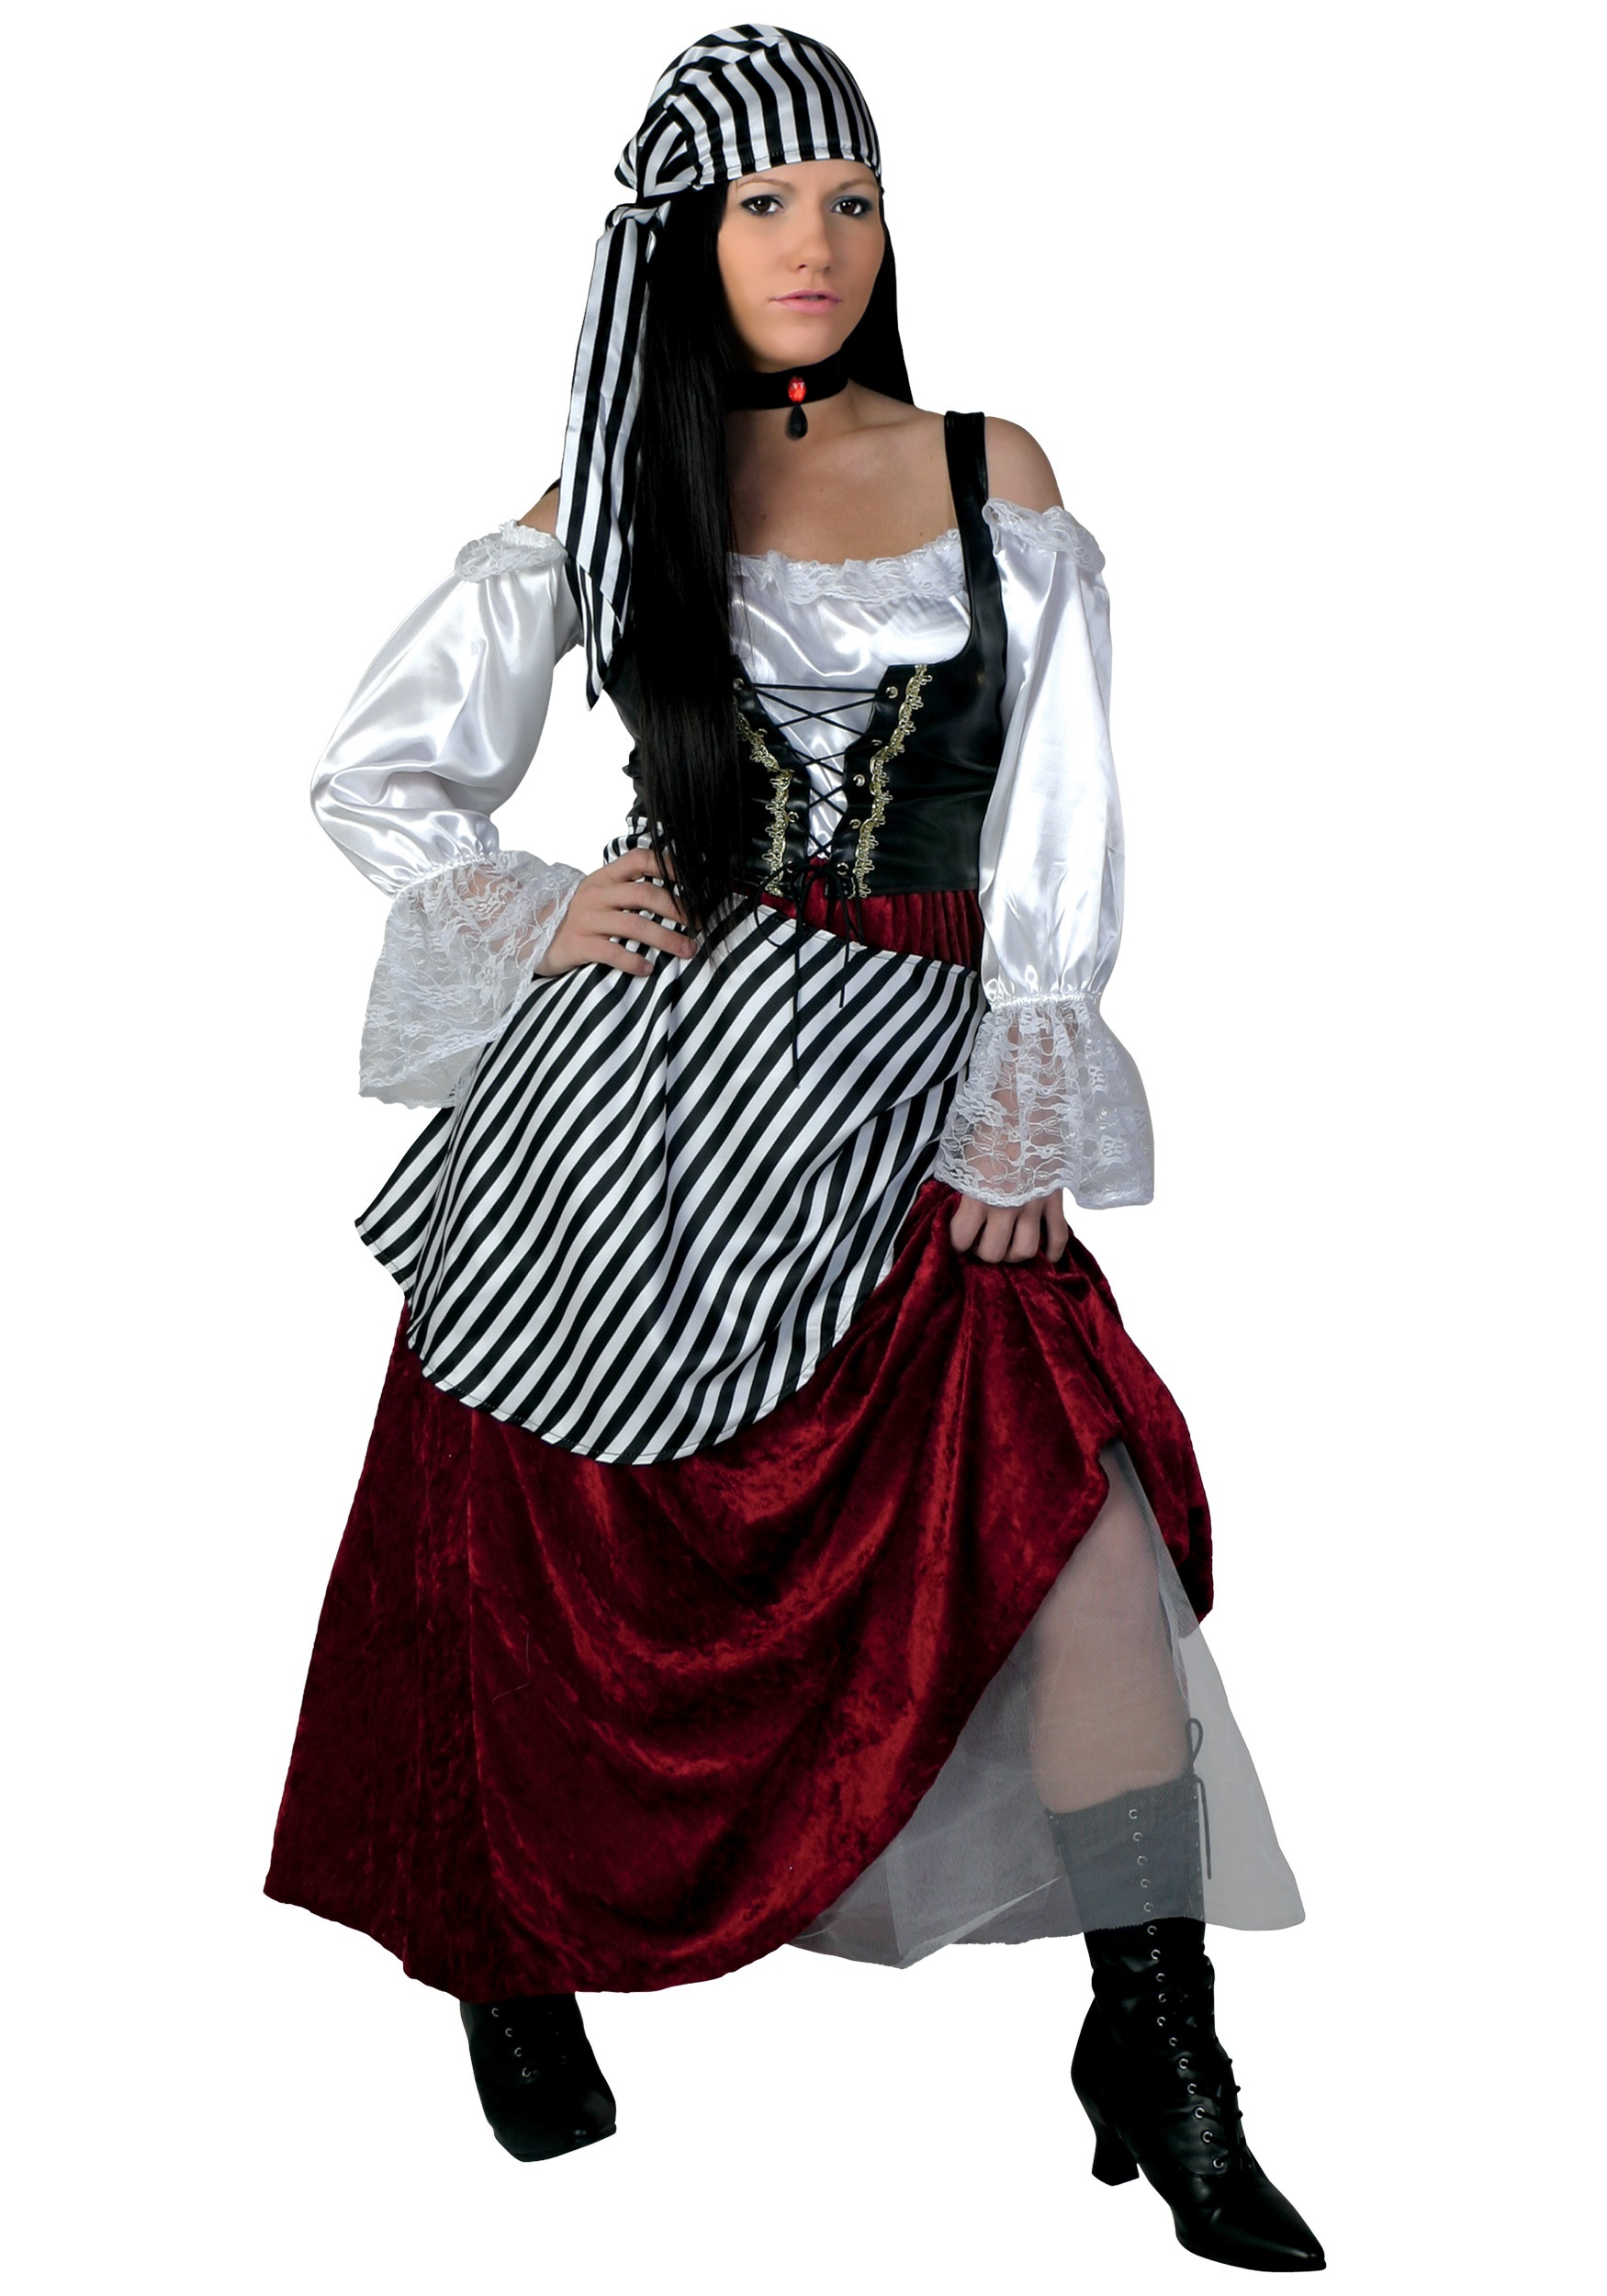 Plus Size Deluxe Pirate Wench Costume by Bayi Co.